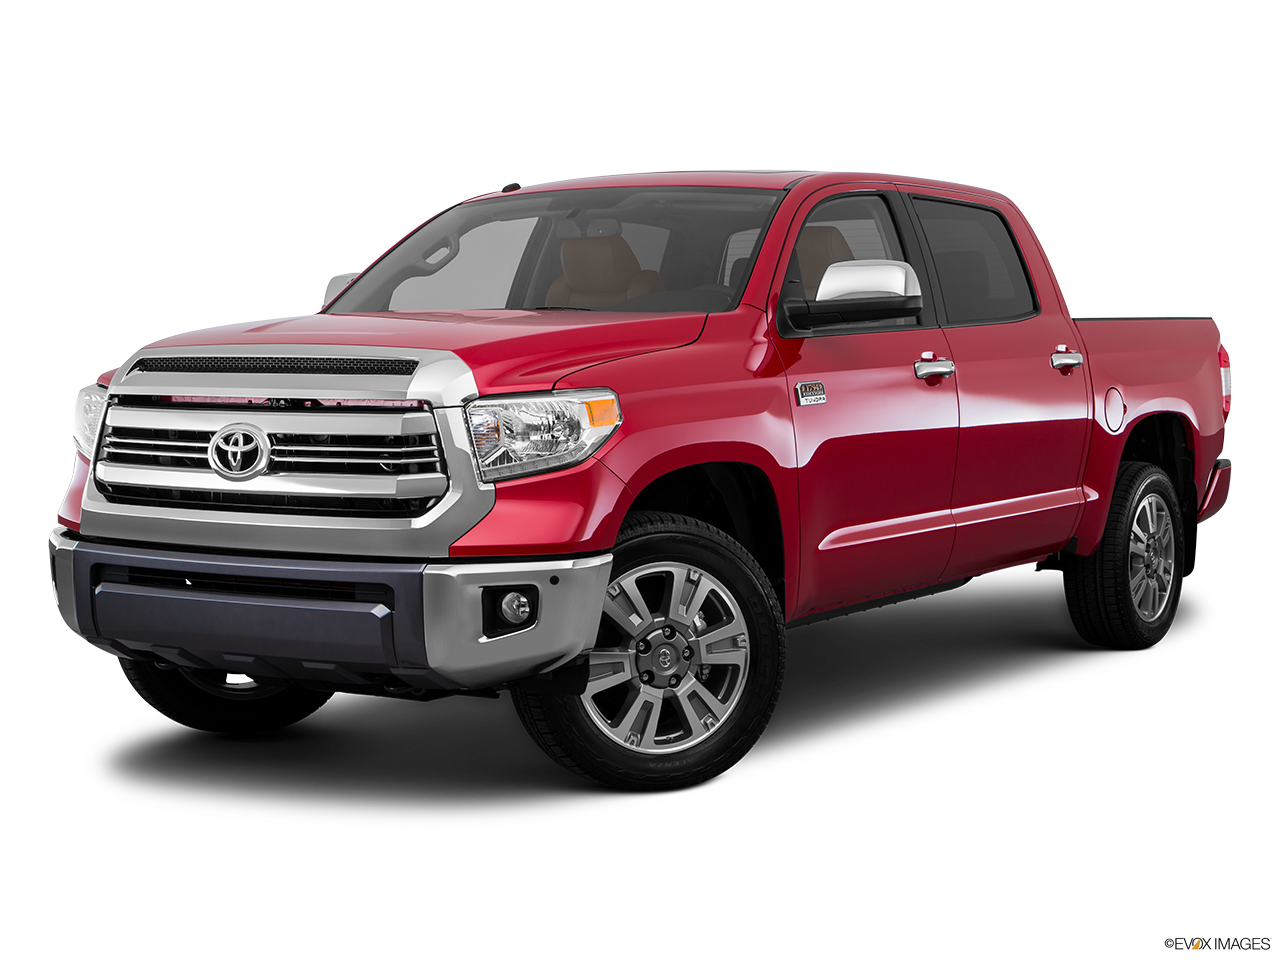 Test Drive A 2016 Toyota Tundra at Tustin Toyota in Tustin